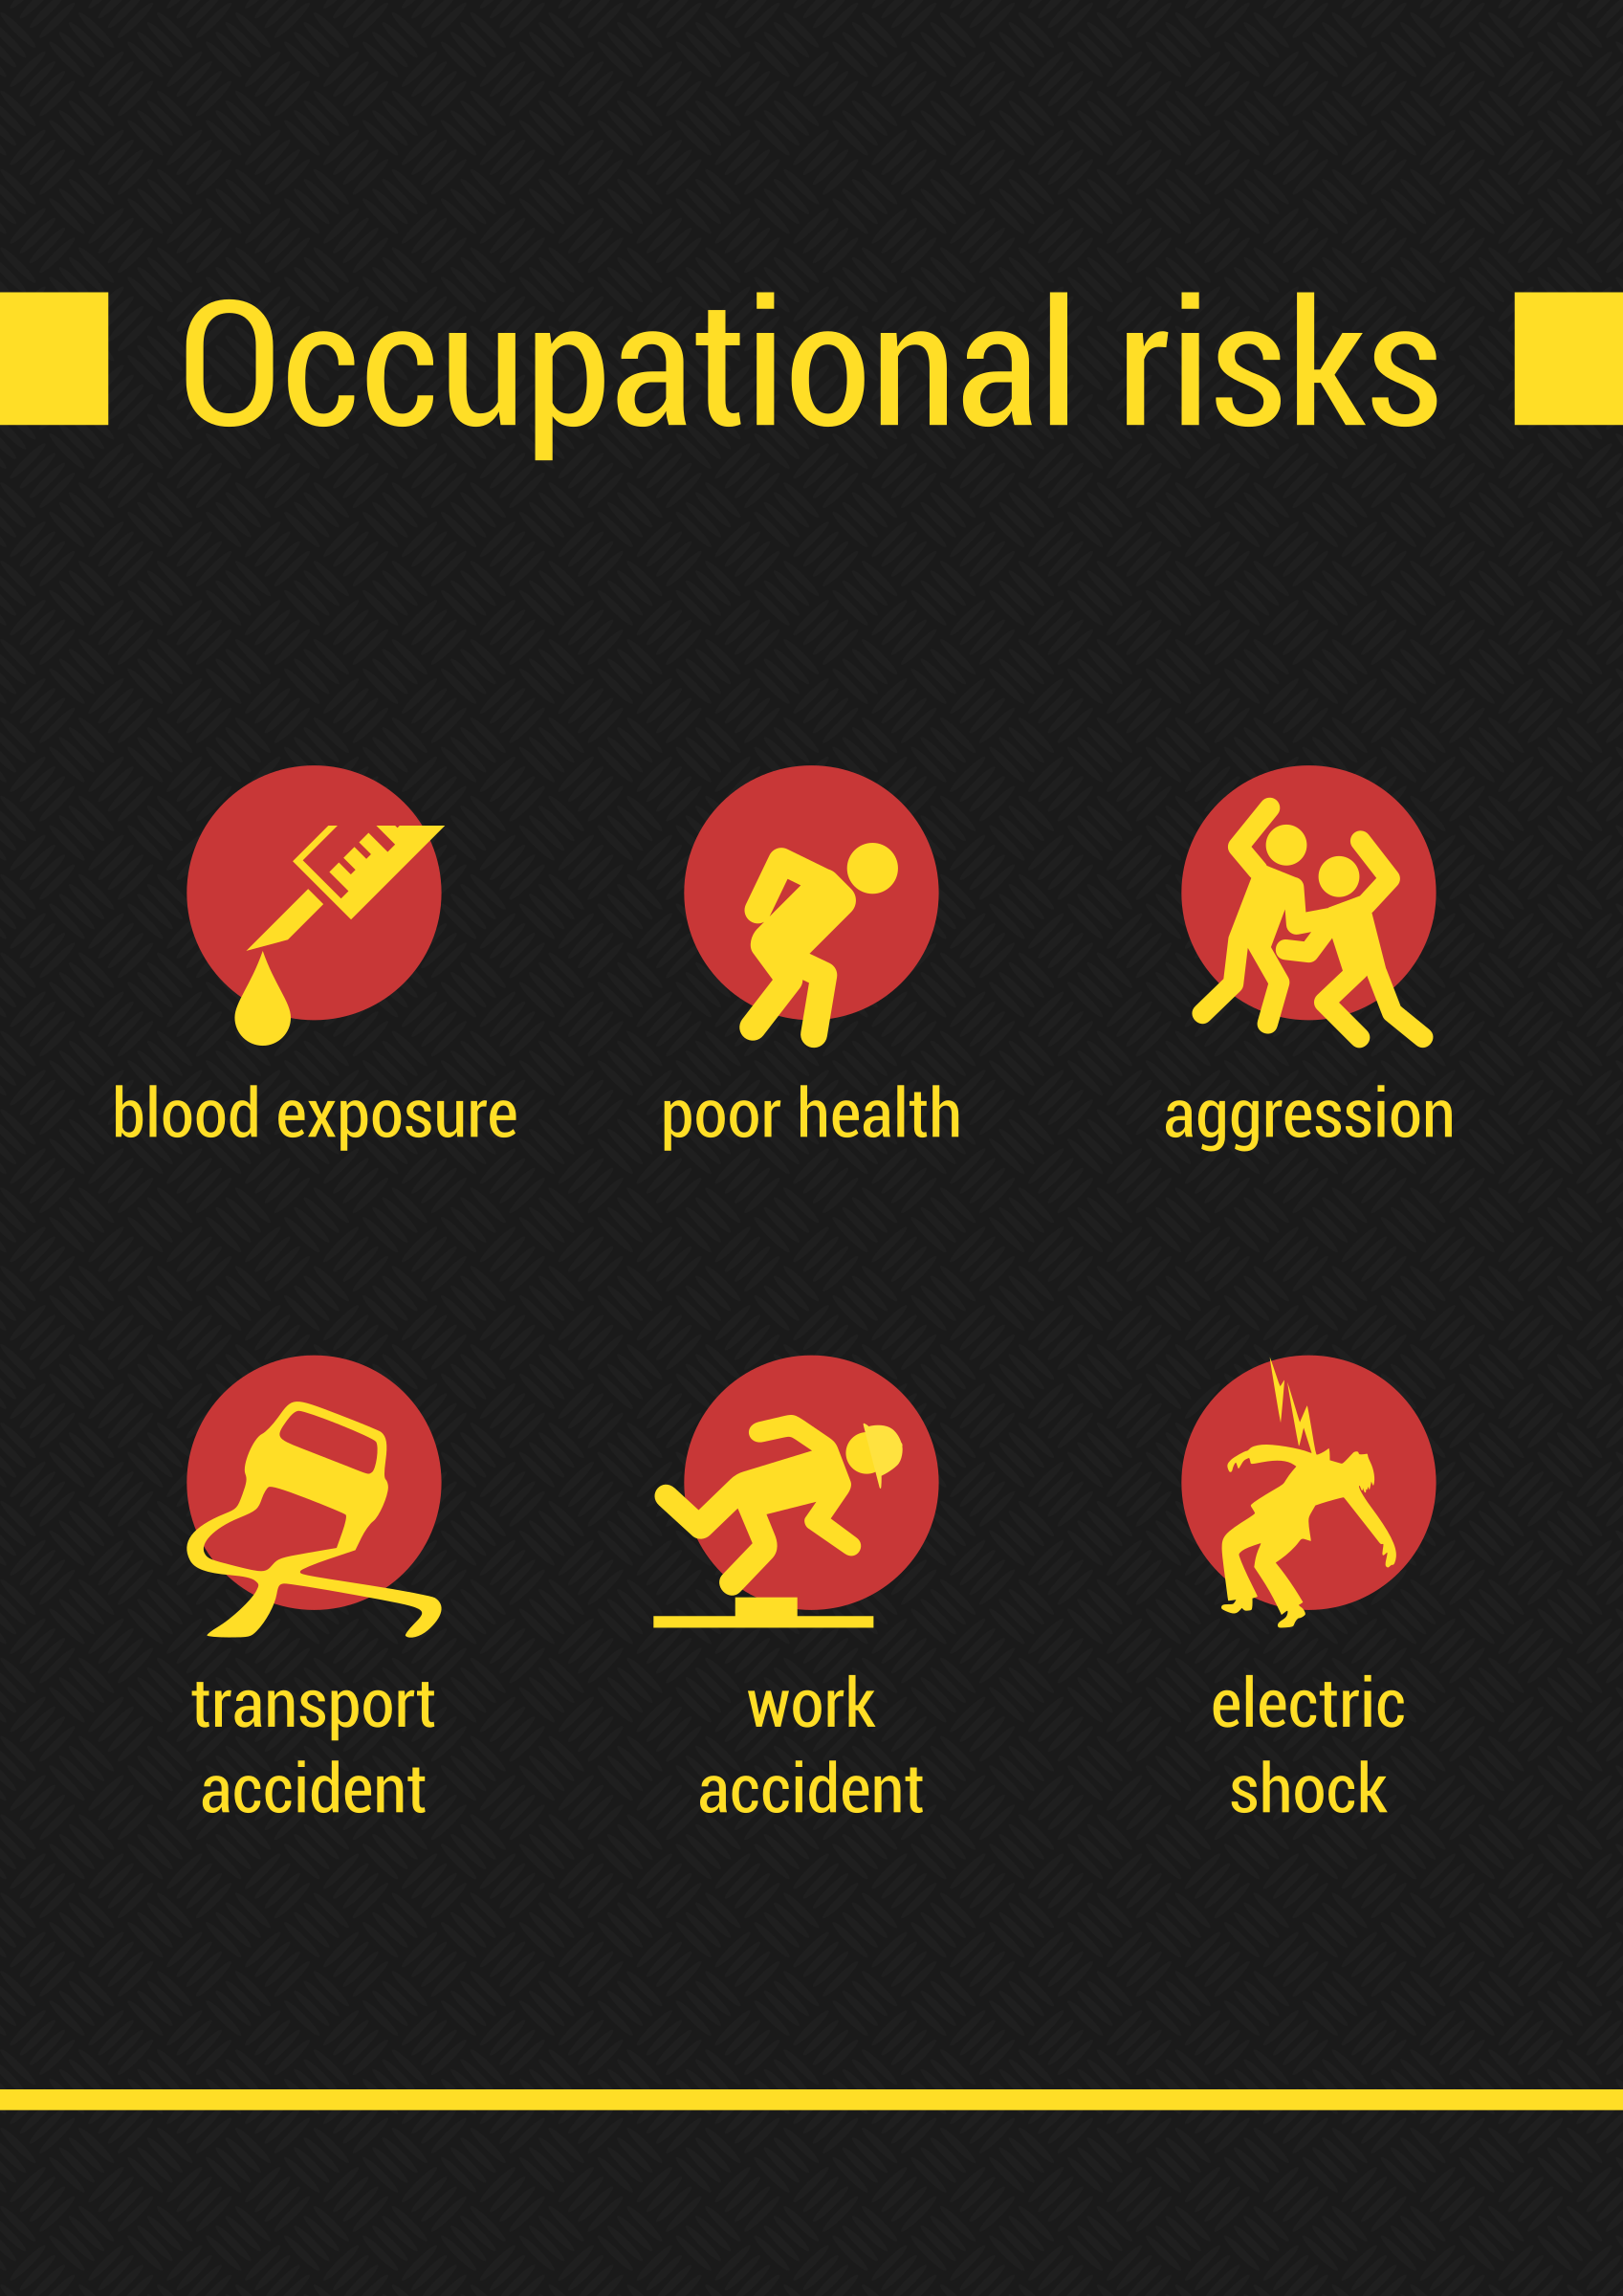 Occupational risks icons by m1981